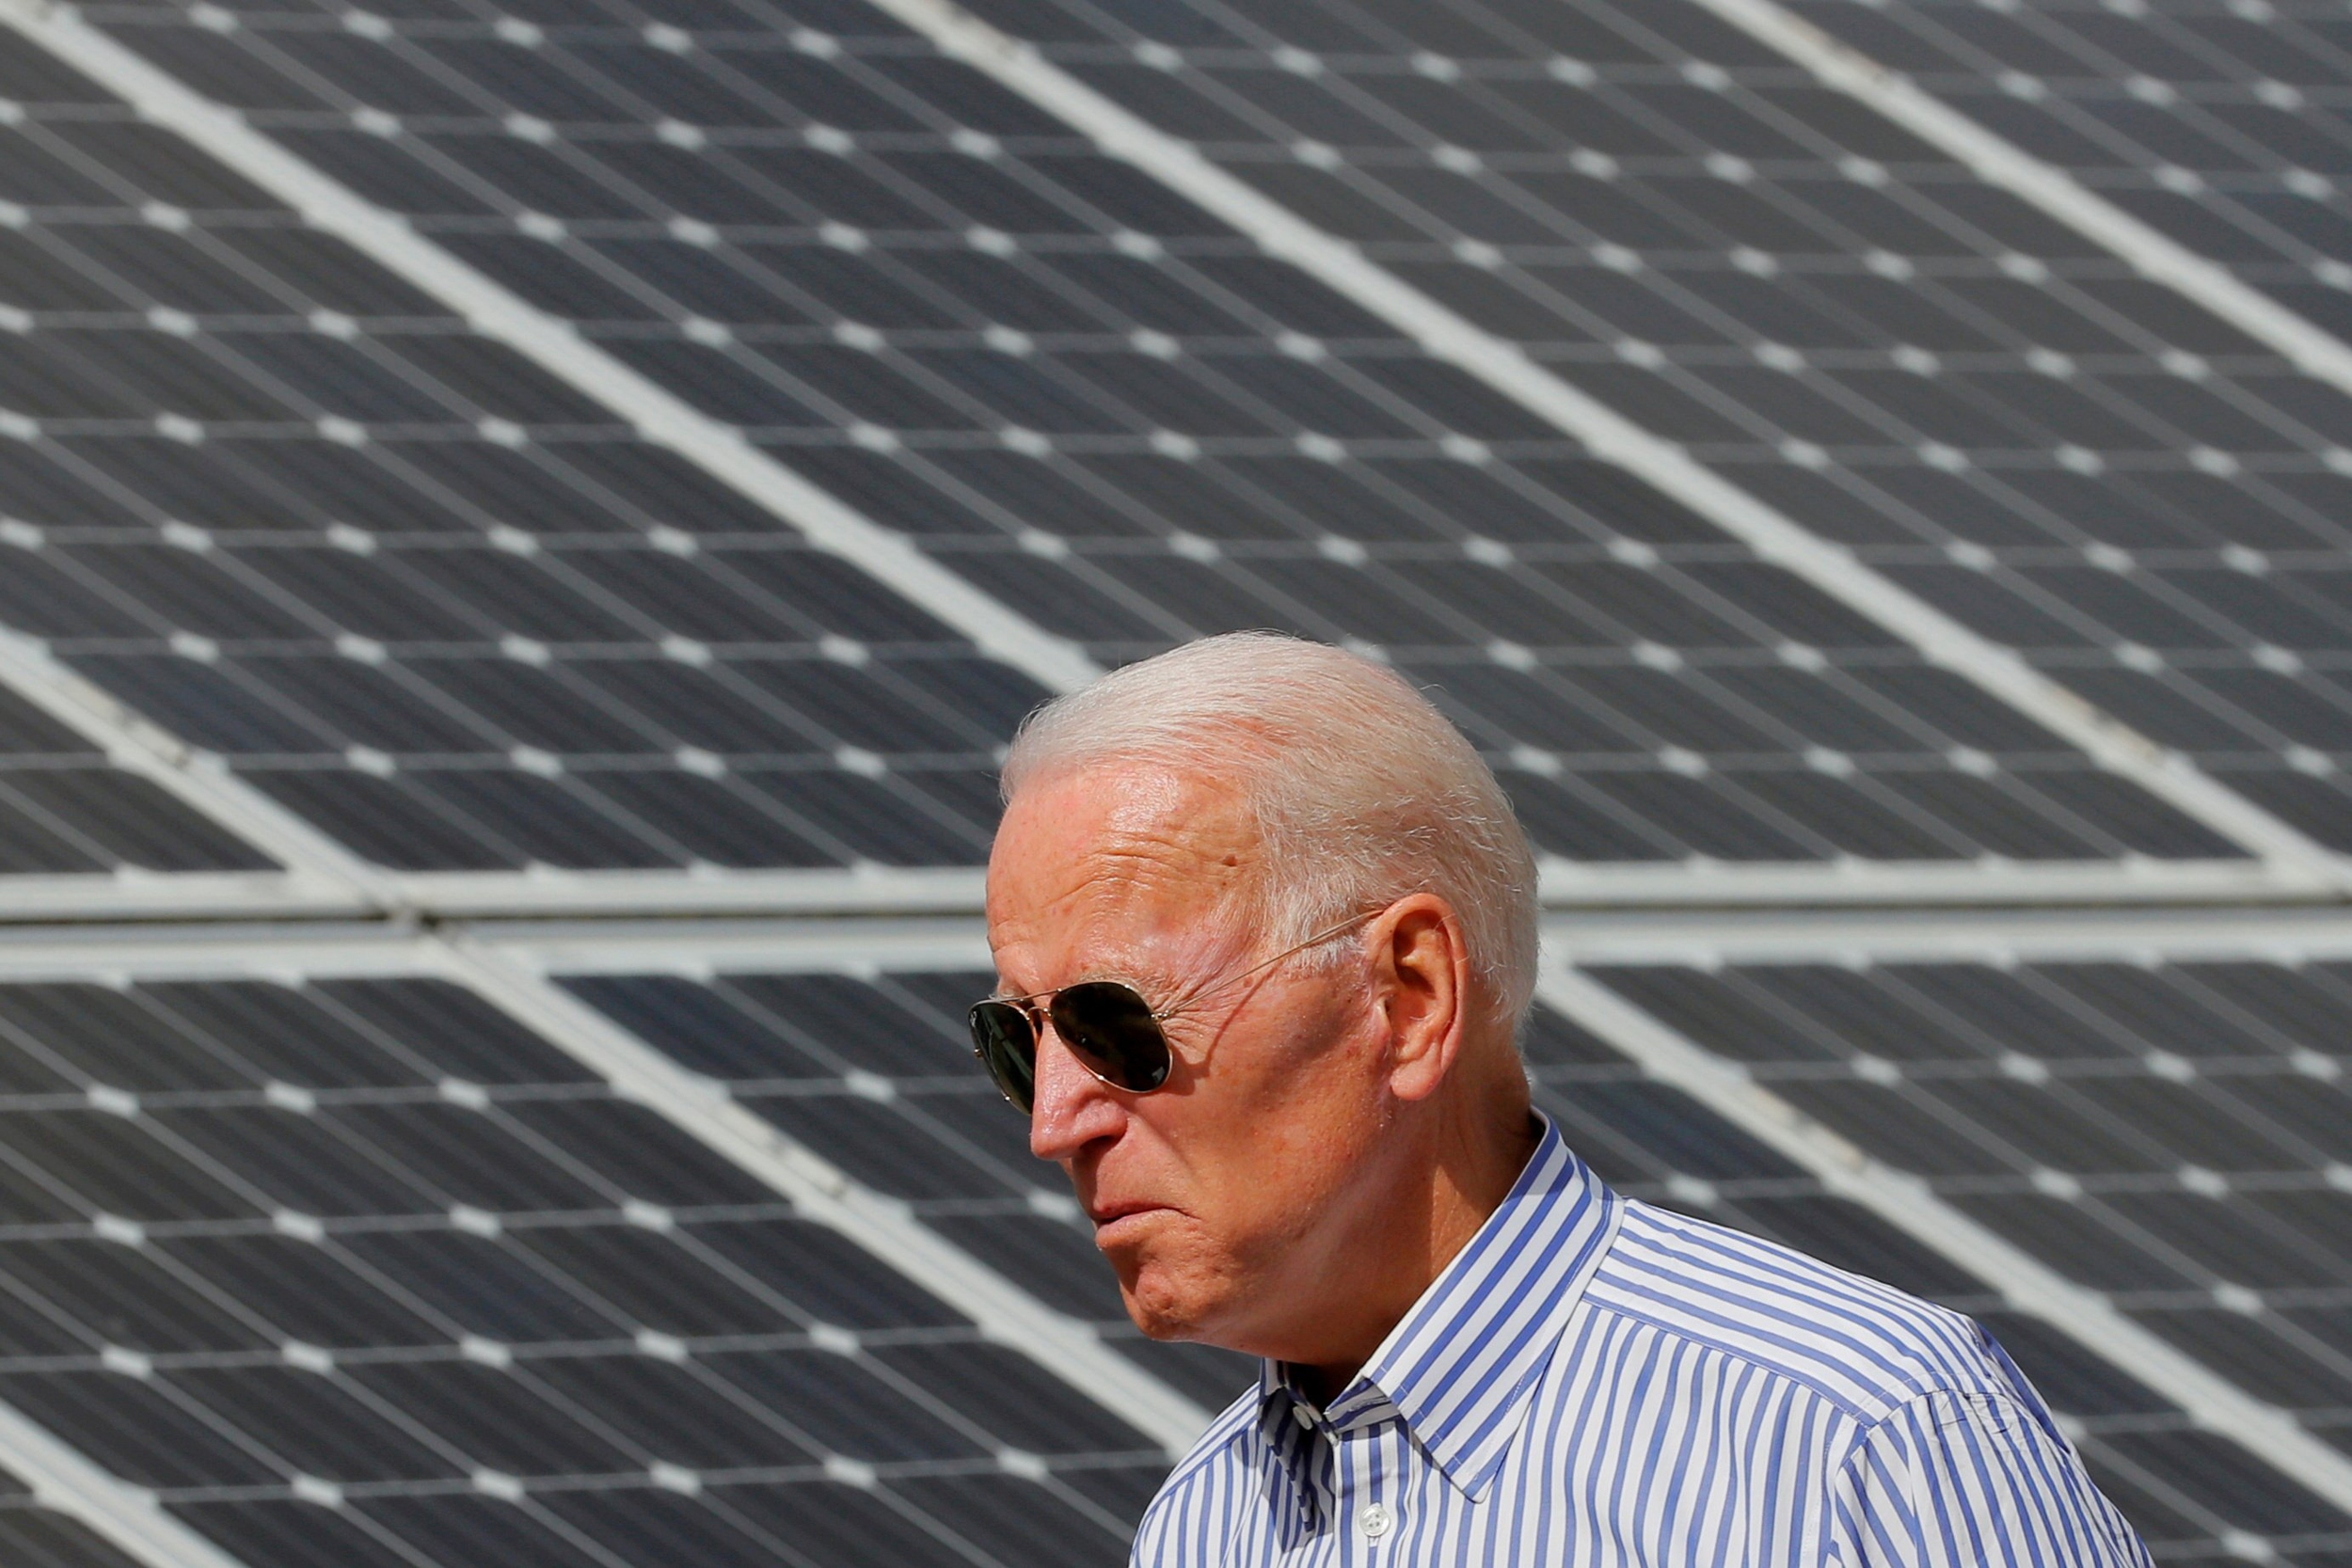 Nearly half of U.S. electricity could come from solar by 2050, Biden administration says